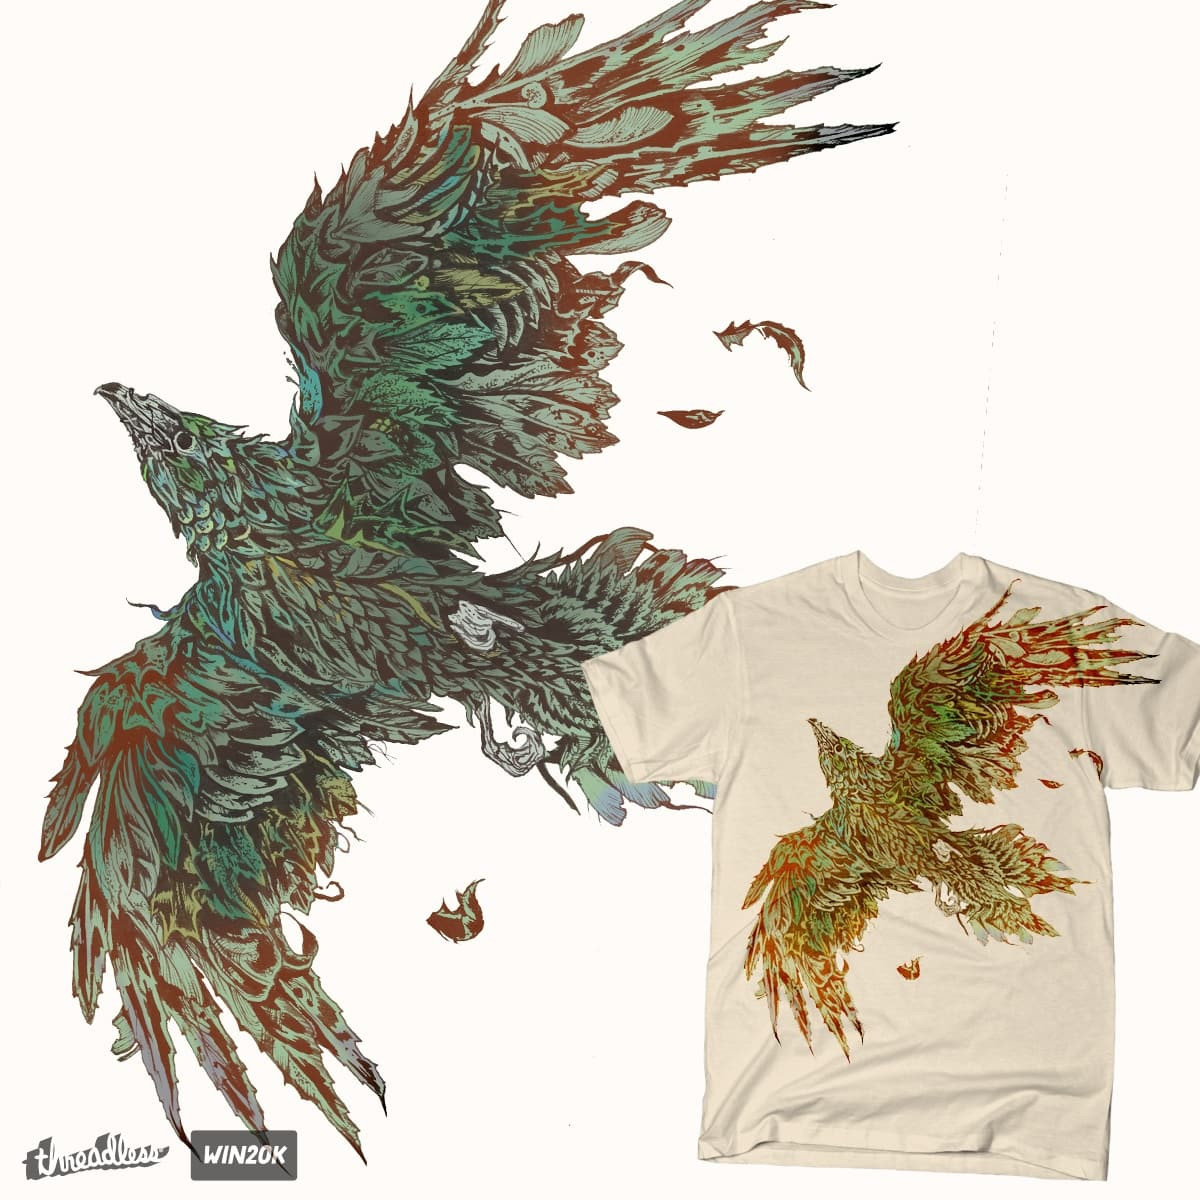 Forest Takes Flight by JonHabens on Threadless